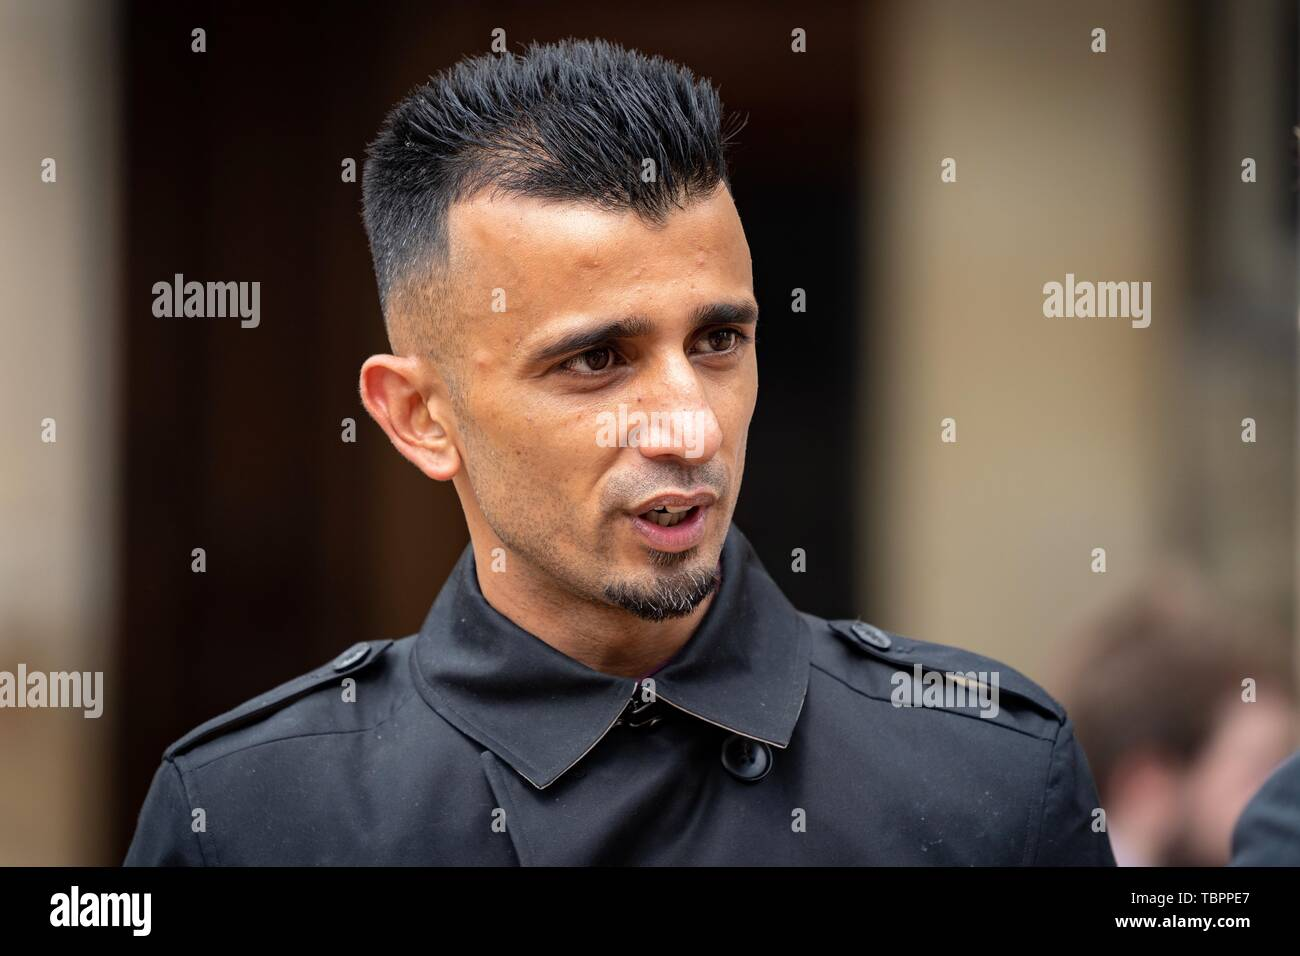 Birmingham, UK. 3rd Jun, 2019. Shakeel Afsar speaks to press regarding the High Court injunction imposed on protesting outside Anderton Park primary school outside Birmingham City Council house, Birmingham, UK. Protesters object to teaching of LGBTQ+ values at the primary school. Credit: Vladimir Morozov - Stock Image